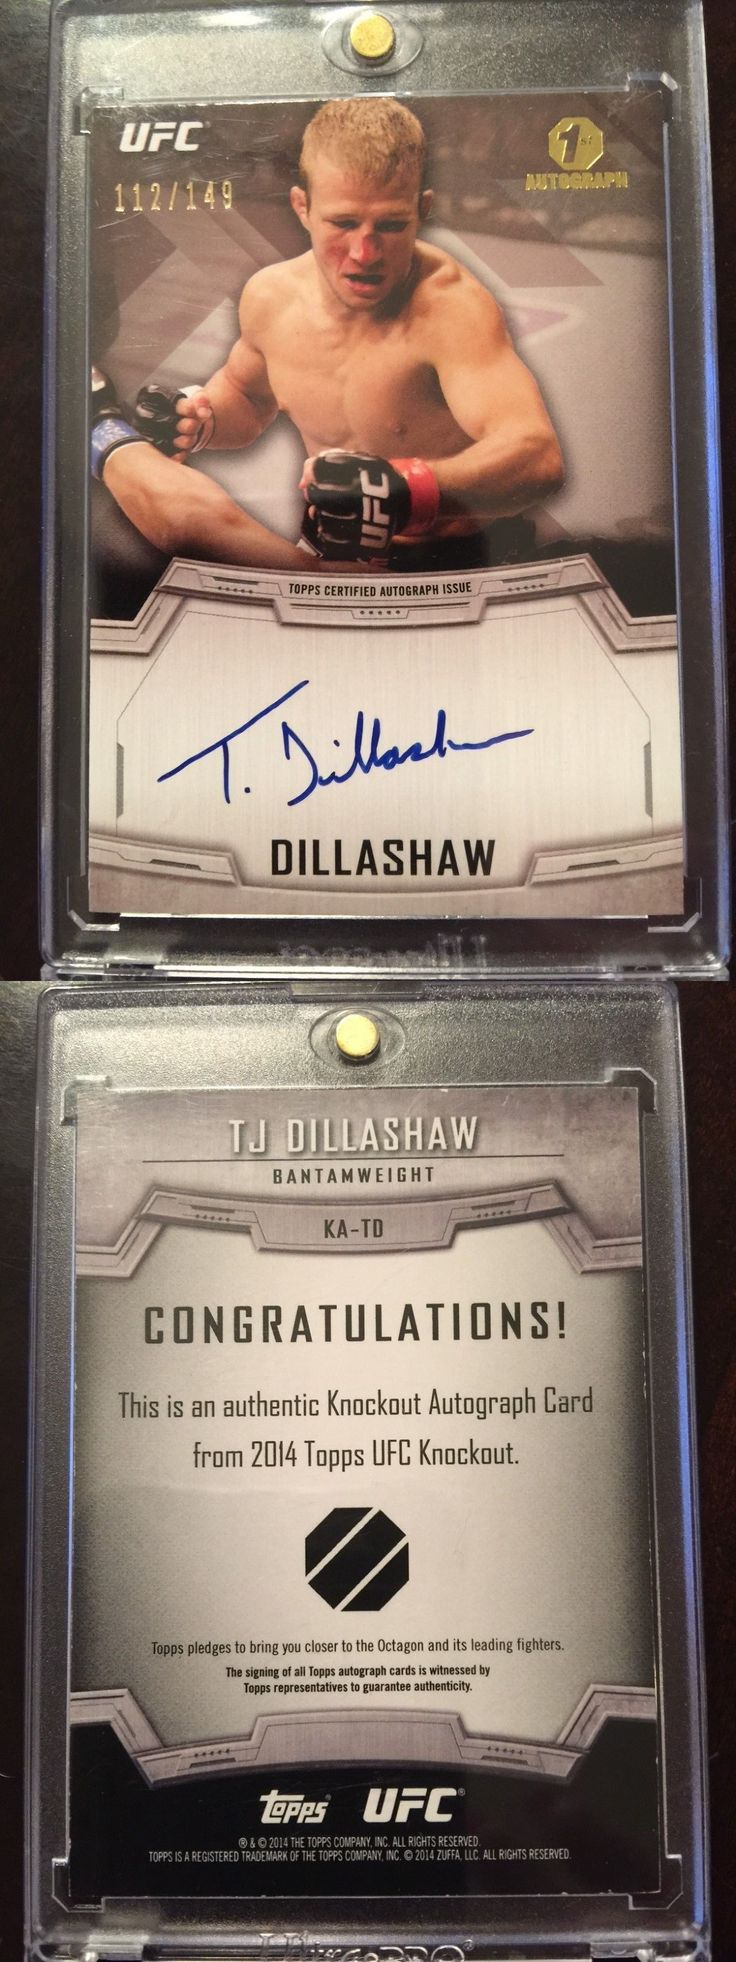 Mixed Martial Arts MMA Cards 170134: 2014 Topps Ufc Knockout Autograph Card 1St Auto Tj Dillashaw 112 149 -> BUY IT NOW ONLY: $59.99 on eBay!